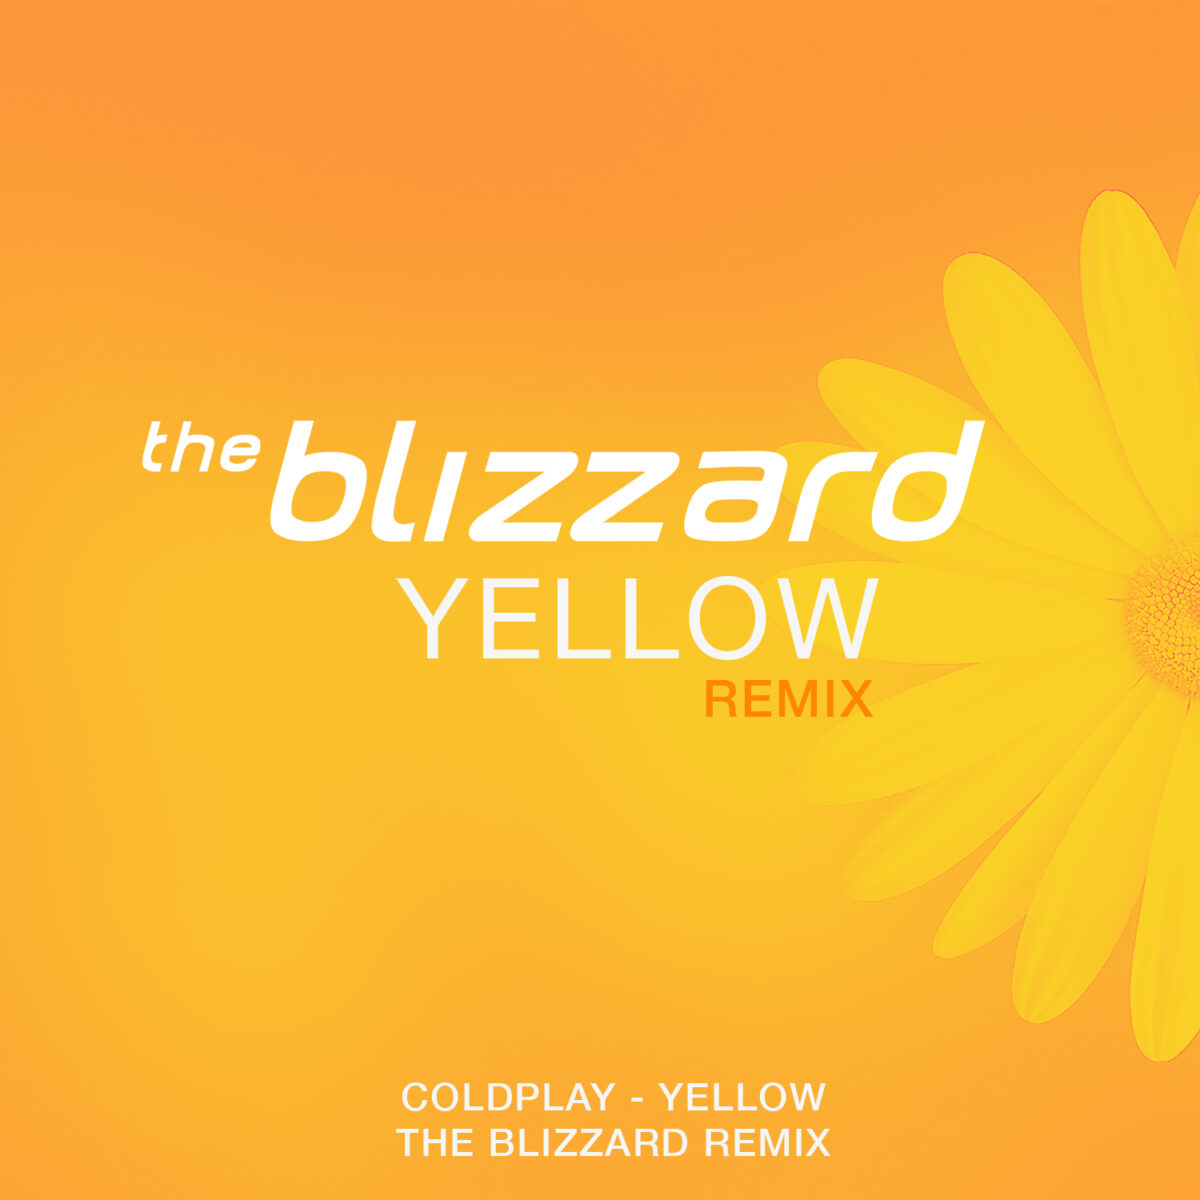 Coldplay - Yellow (The Blizzard Remix)